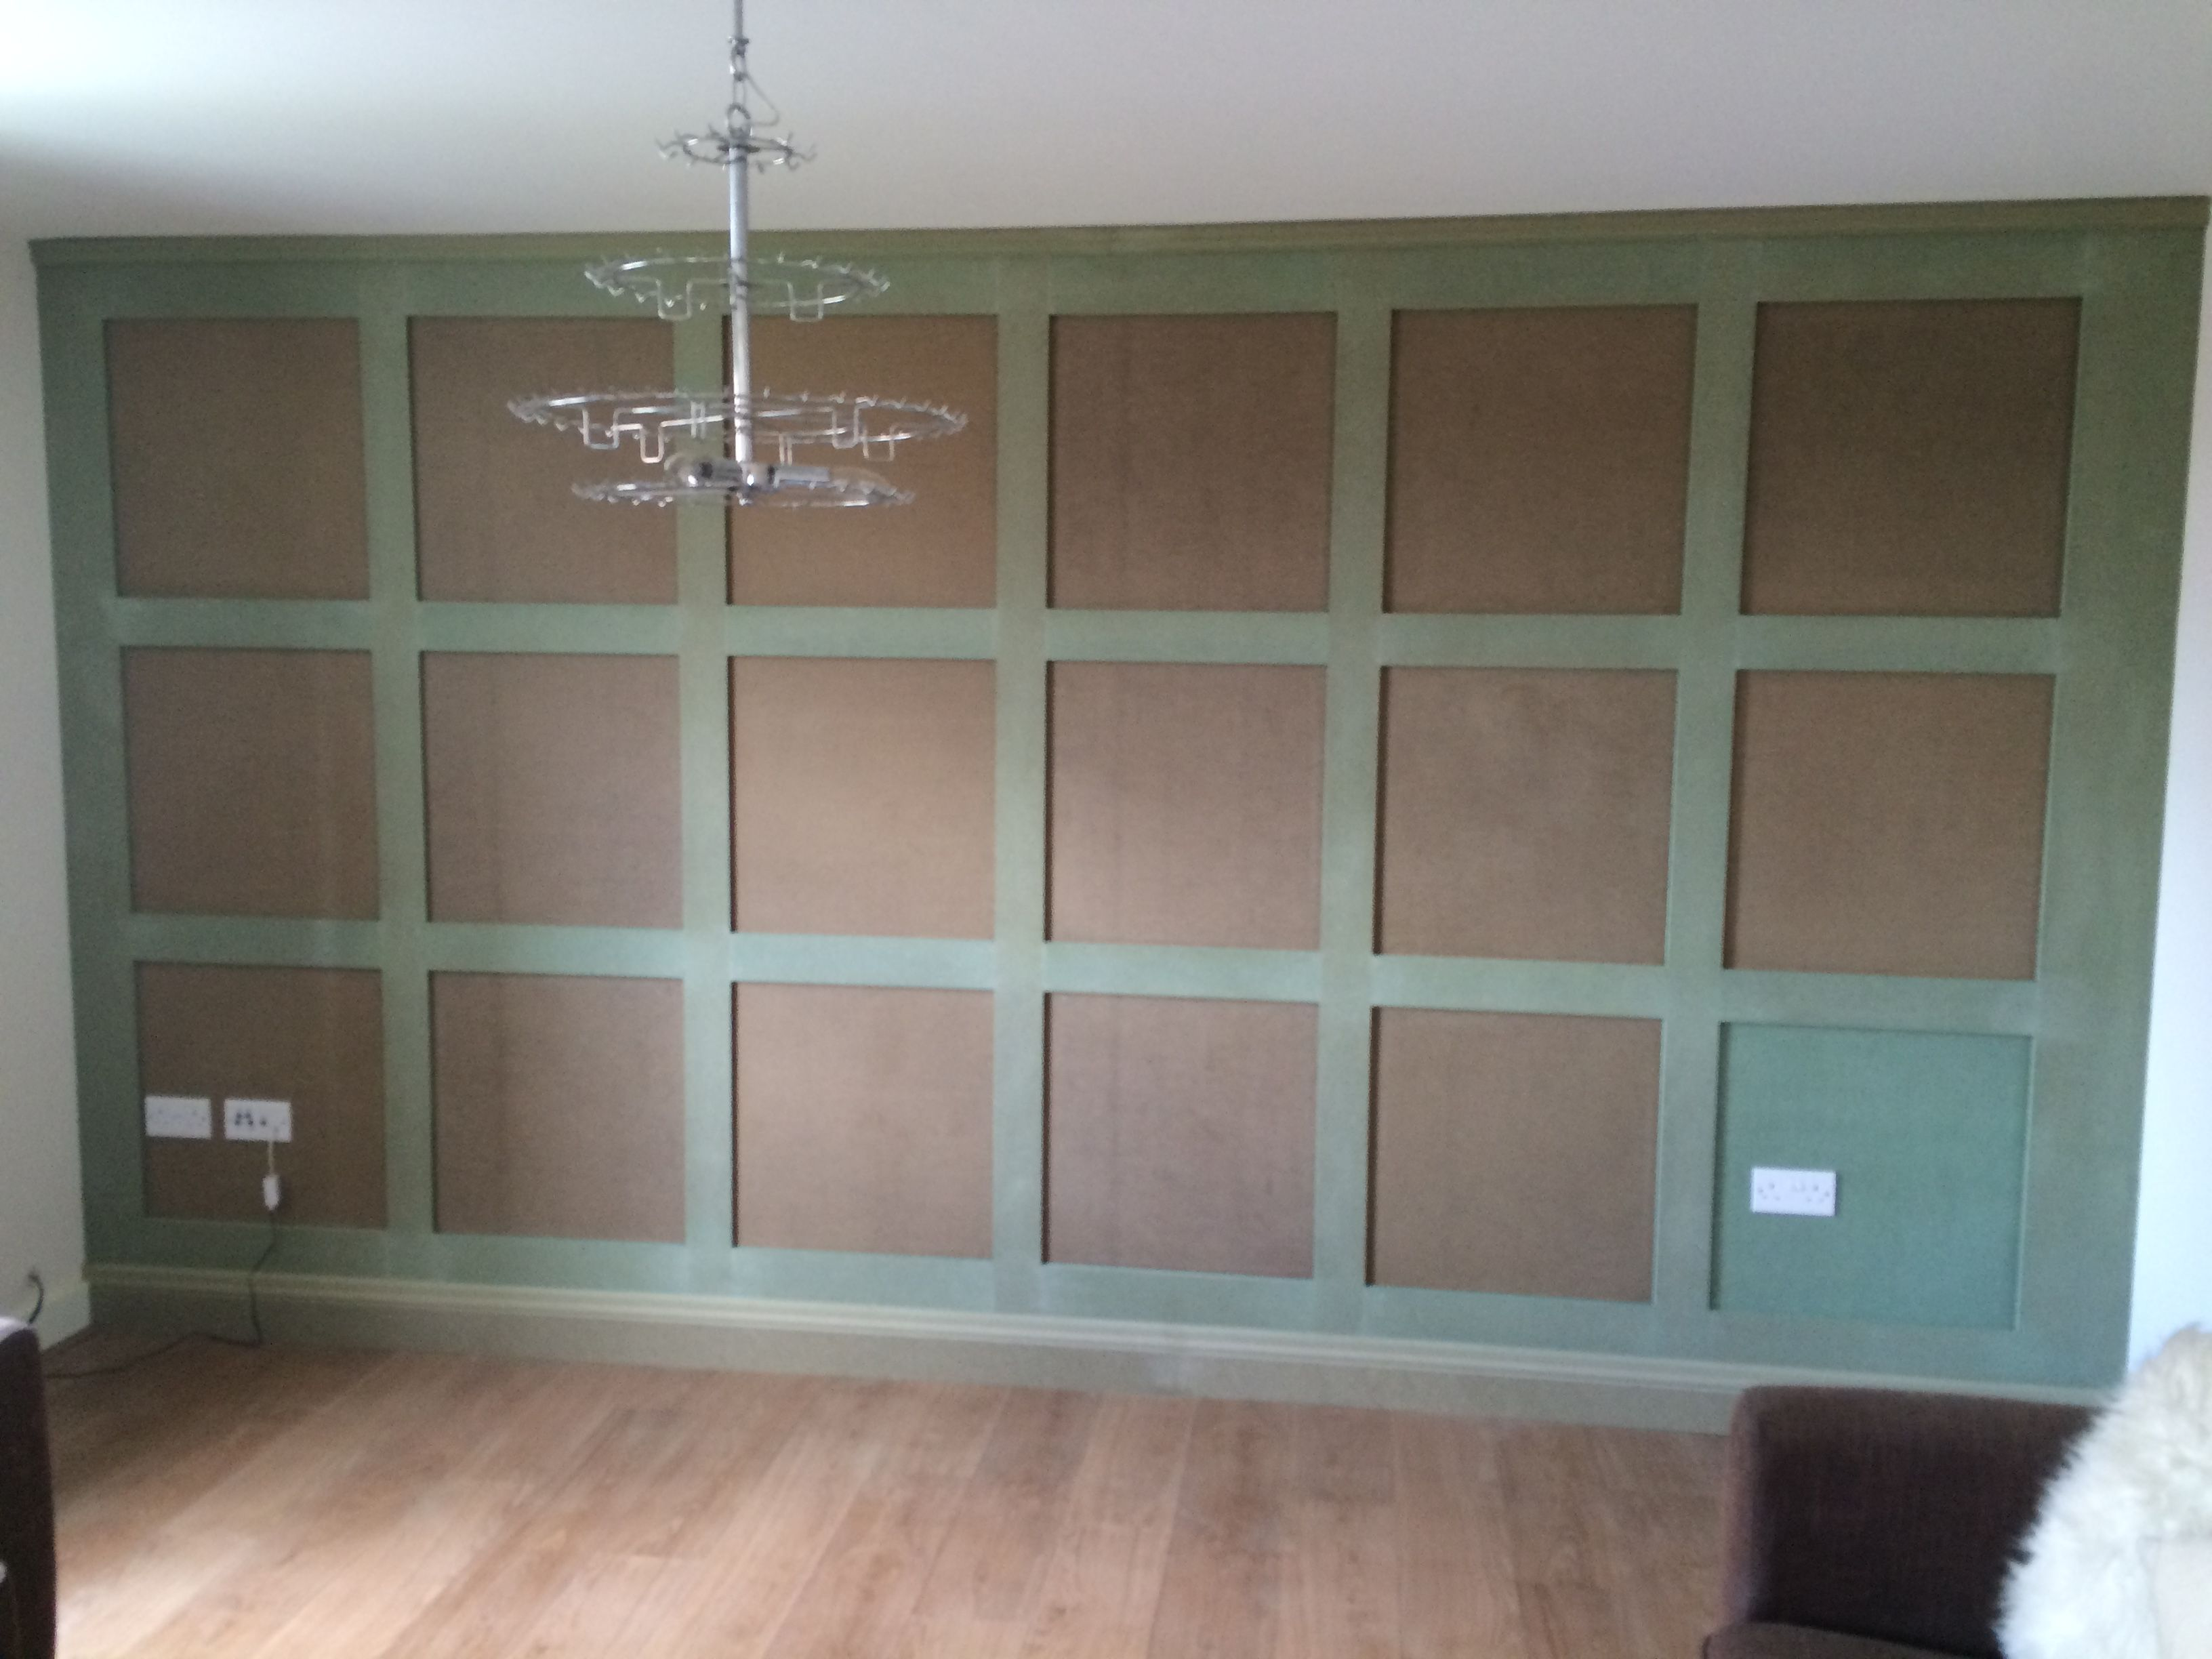 Shaker Panelling Unfinished Ie Ready To Prime And Paint Feature Wall By Wall Panelling Experts Painted Feature Wall Wall Paneling Shaker Style